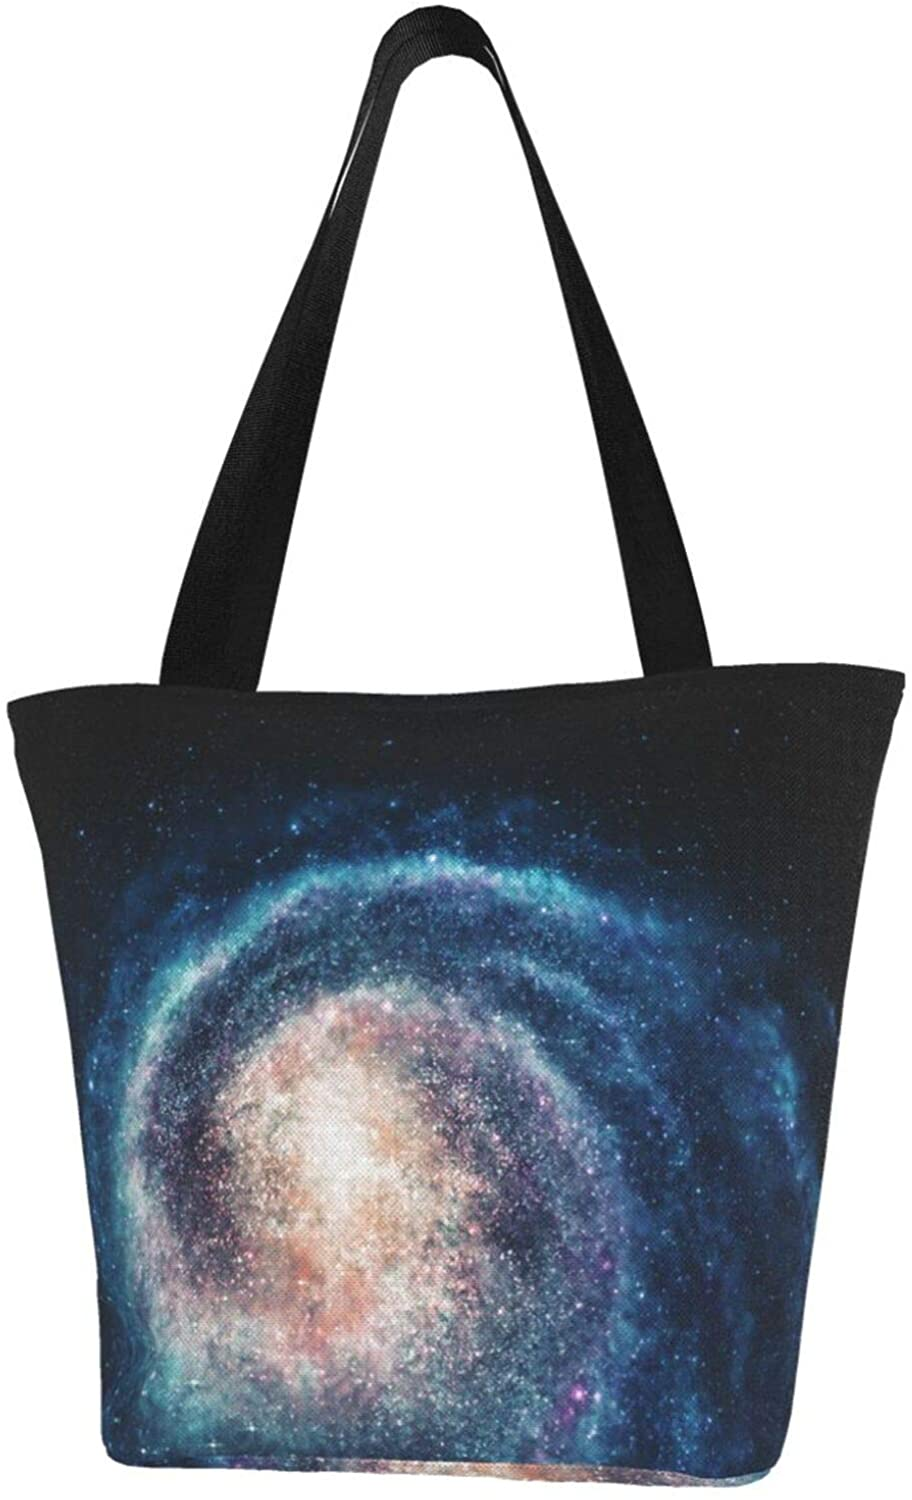 Reusable Marvellous 3d Rendering. Canvas Tote Bag ,Durable Canvas Tote Bag with Interior Pocket ,Washable Foldable Canvas Tote Bag for Beach,Shipping,Groceries,Books